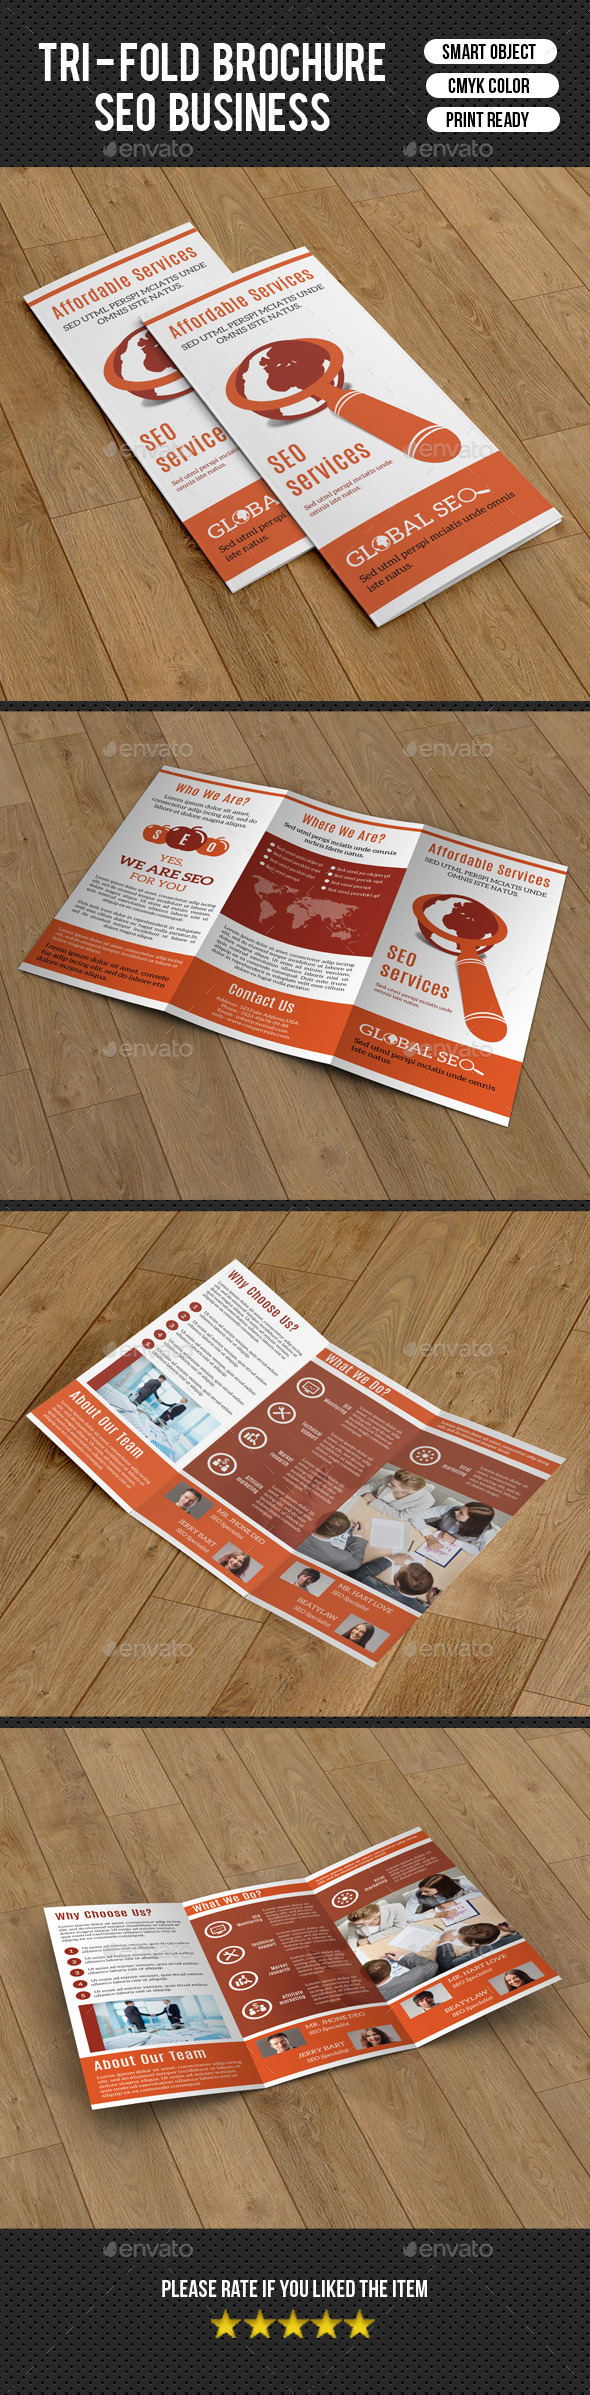 GraphicRiver Trifold Brochure for SEO Business-V211 9911593